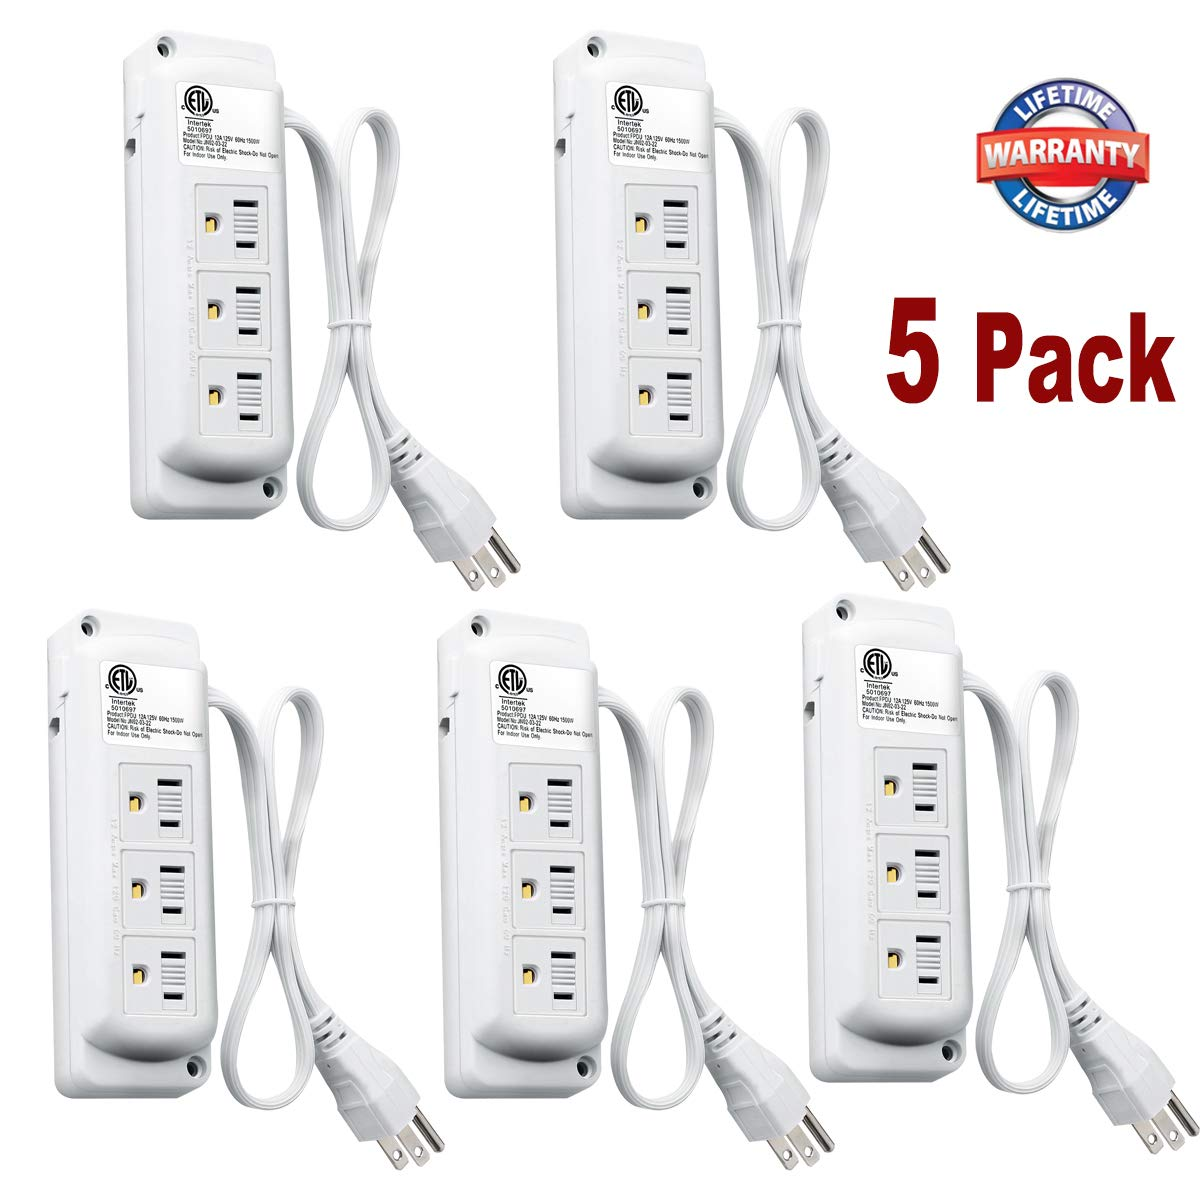 3-Outlets Power Strip with Safety Cover - (5 Pack),1500 W Grounded Wall Socket with Extension Cord and 3-Prong Plug,ETL Listed - White